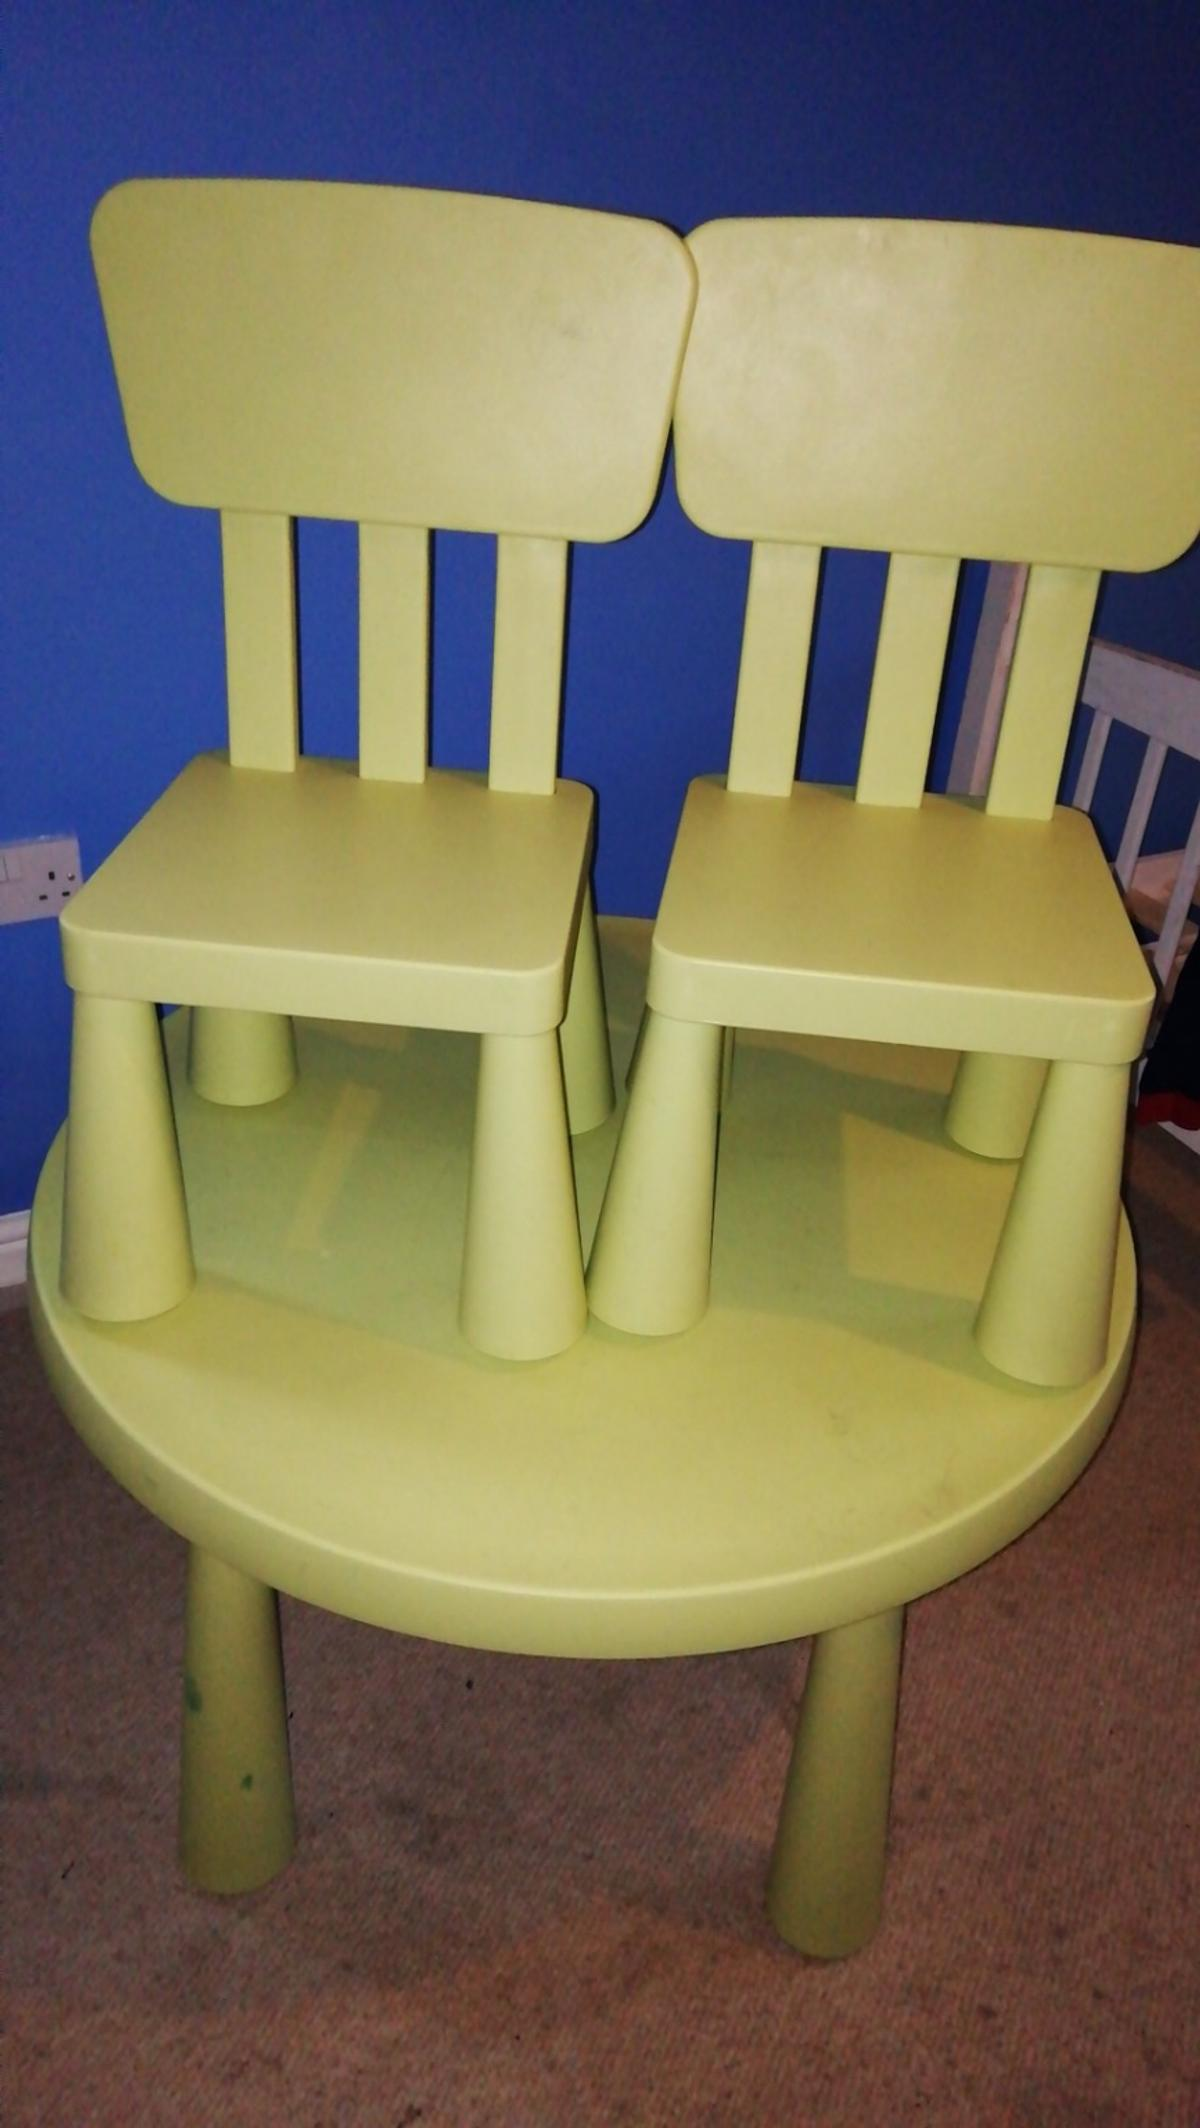 Swell Ikea Kids Green Round Mammut Table 2 Chairs Onthecornerstone Fun Painted Chair Ideas Images Onthecornerstoneorg